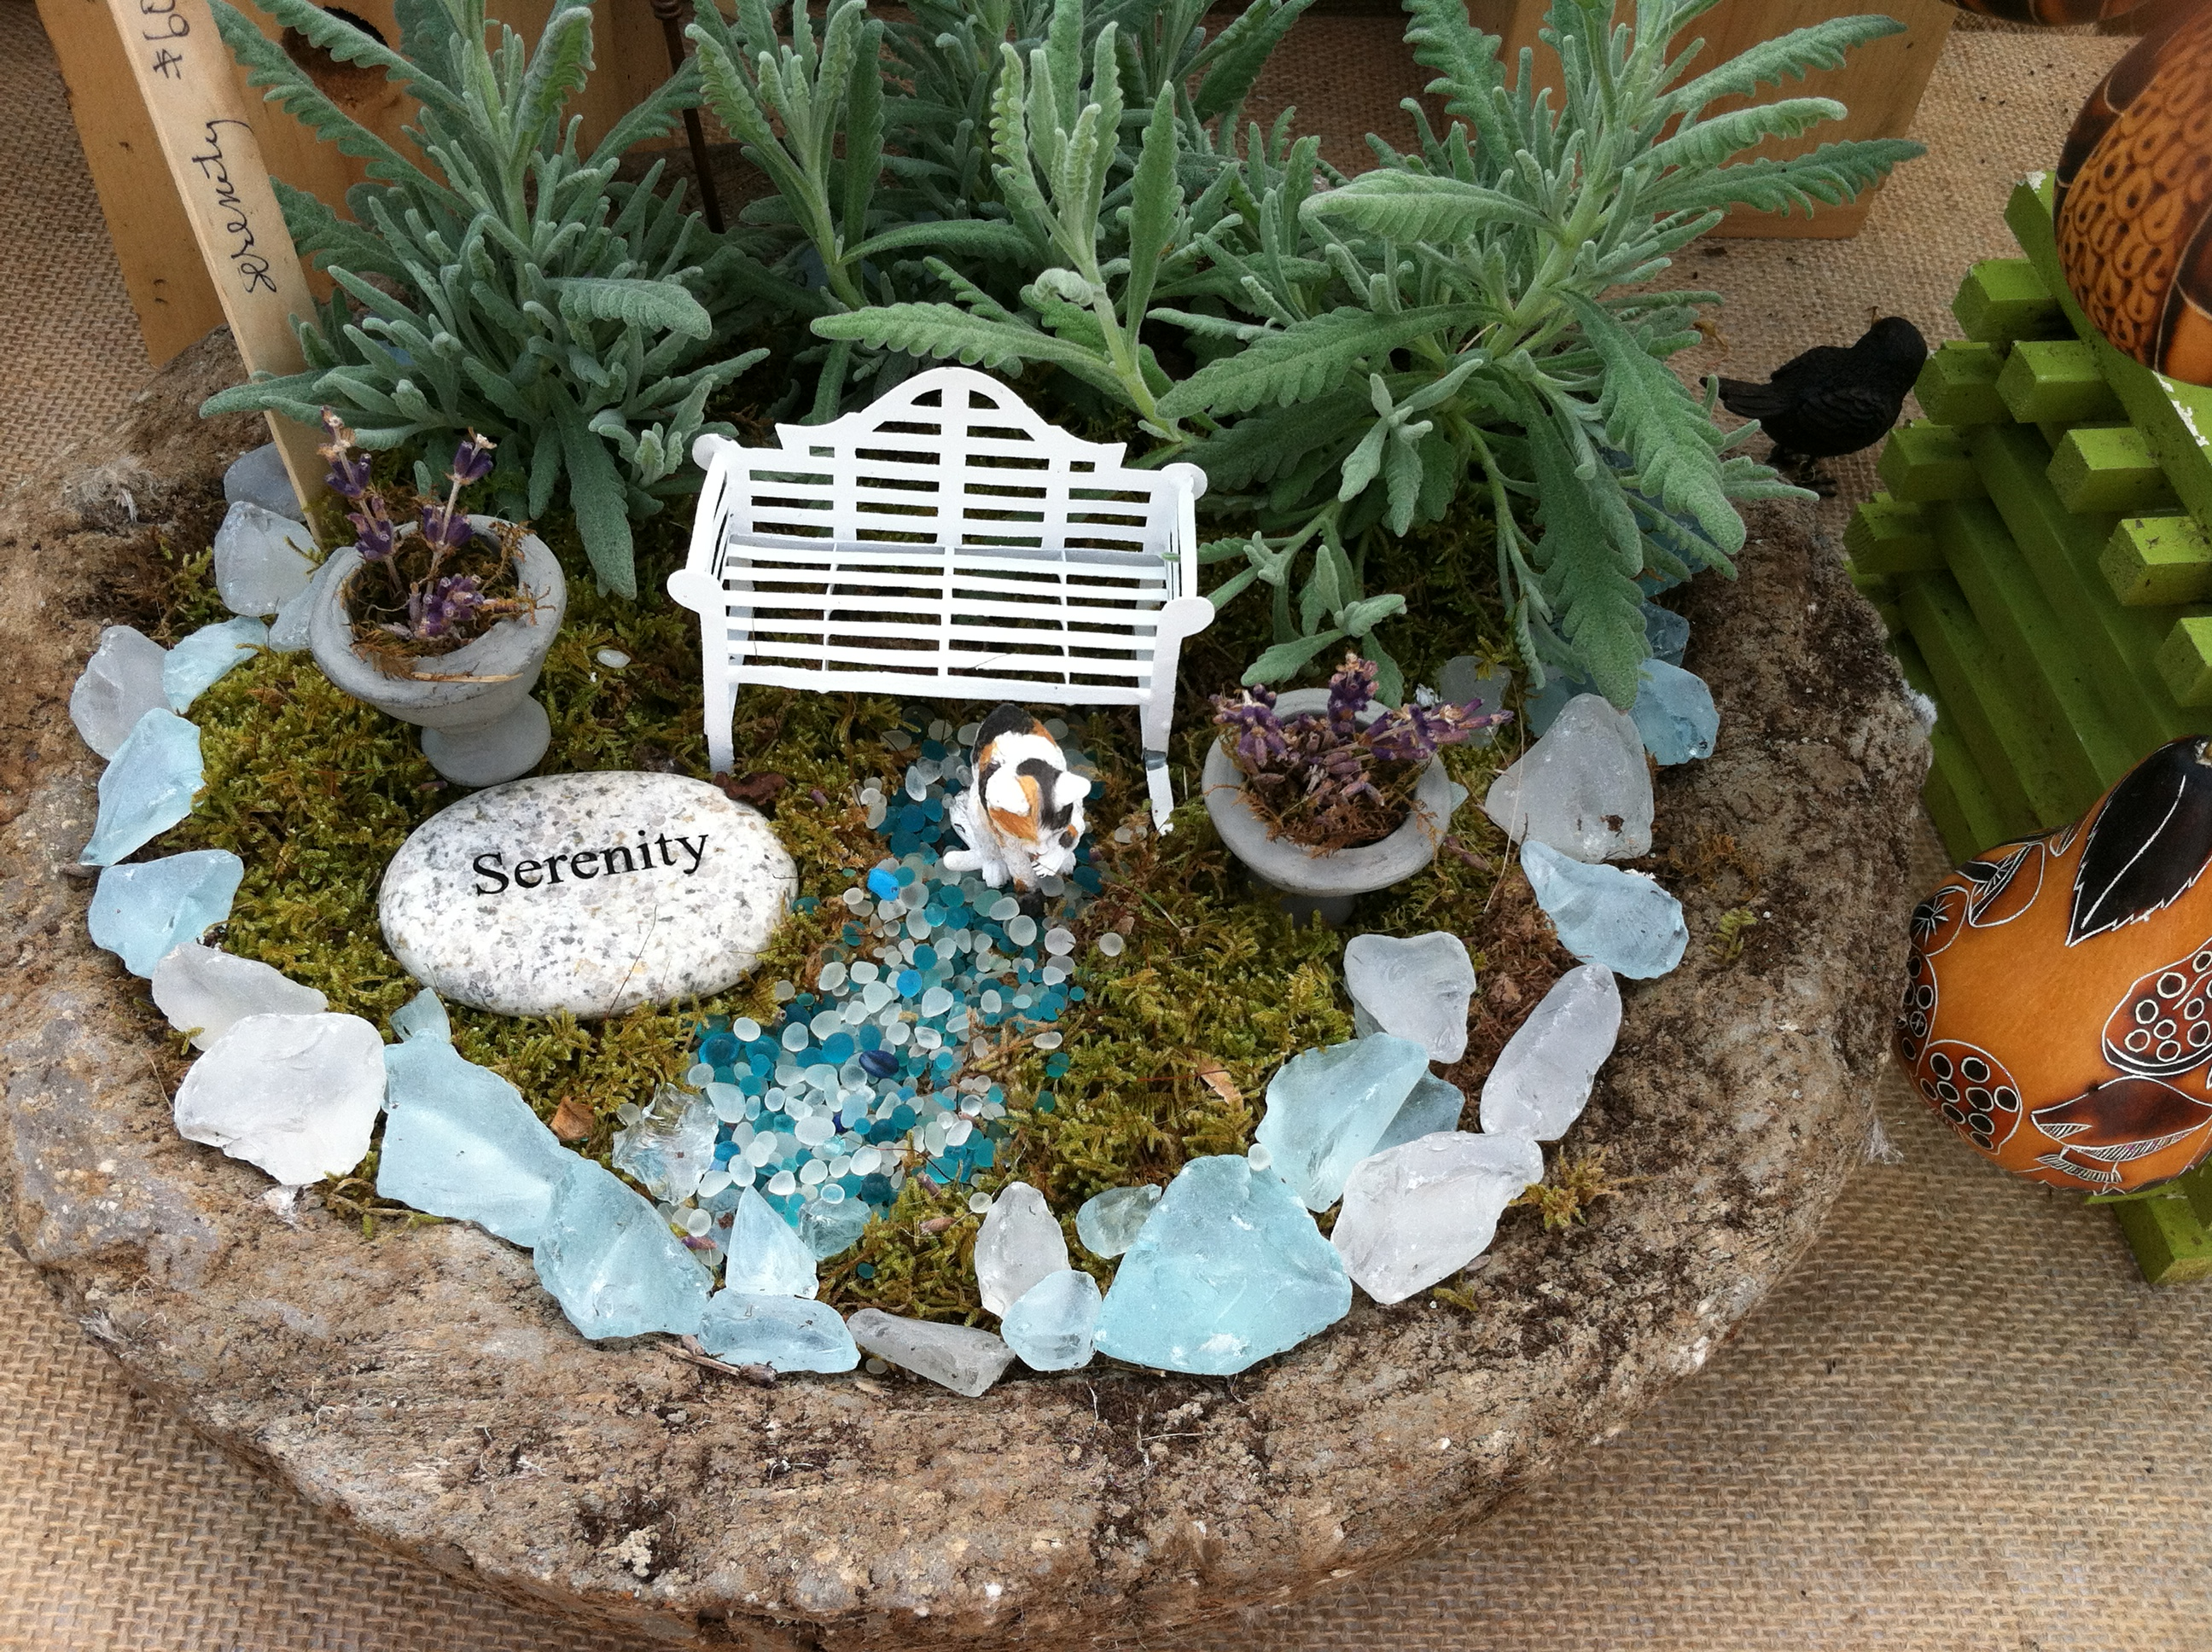 Miniature gardens whimsical creations the garden diaries for Mini landscape garden ideas